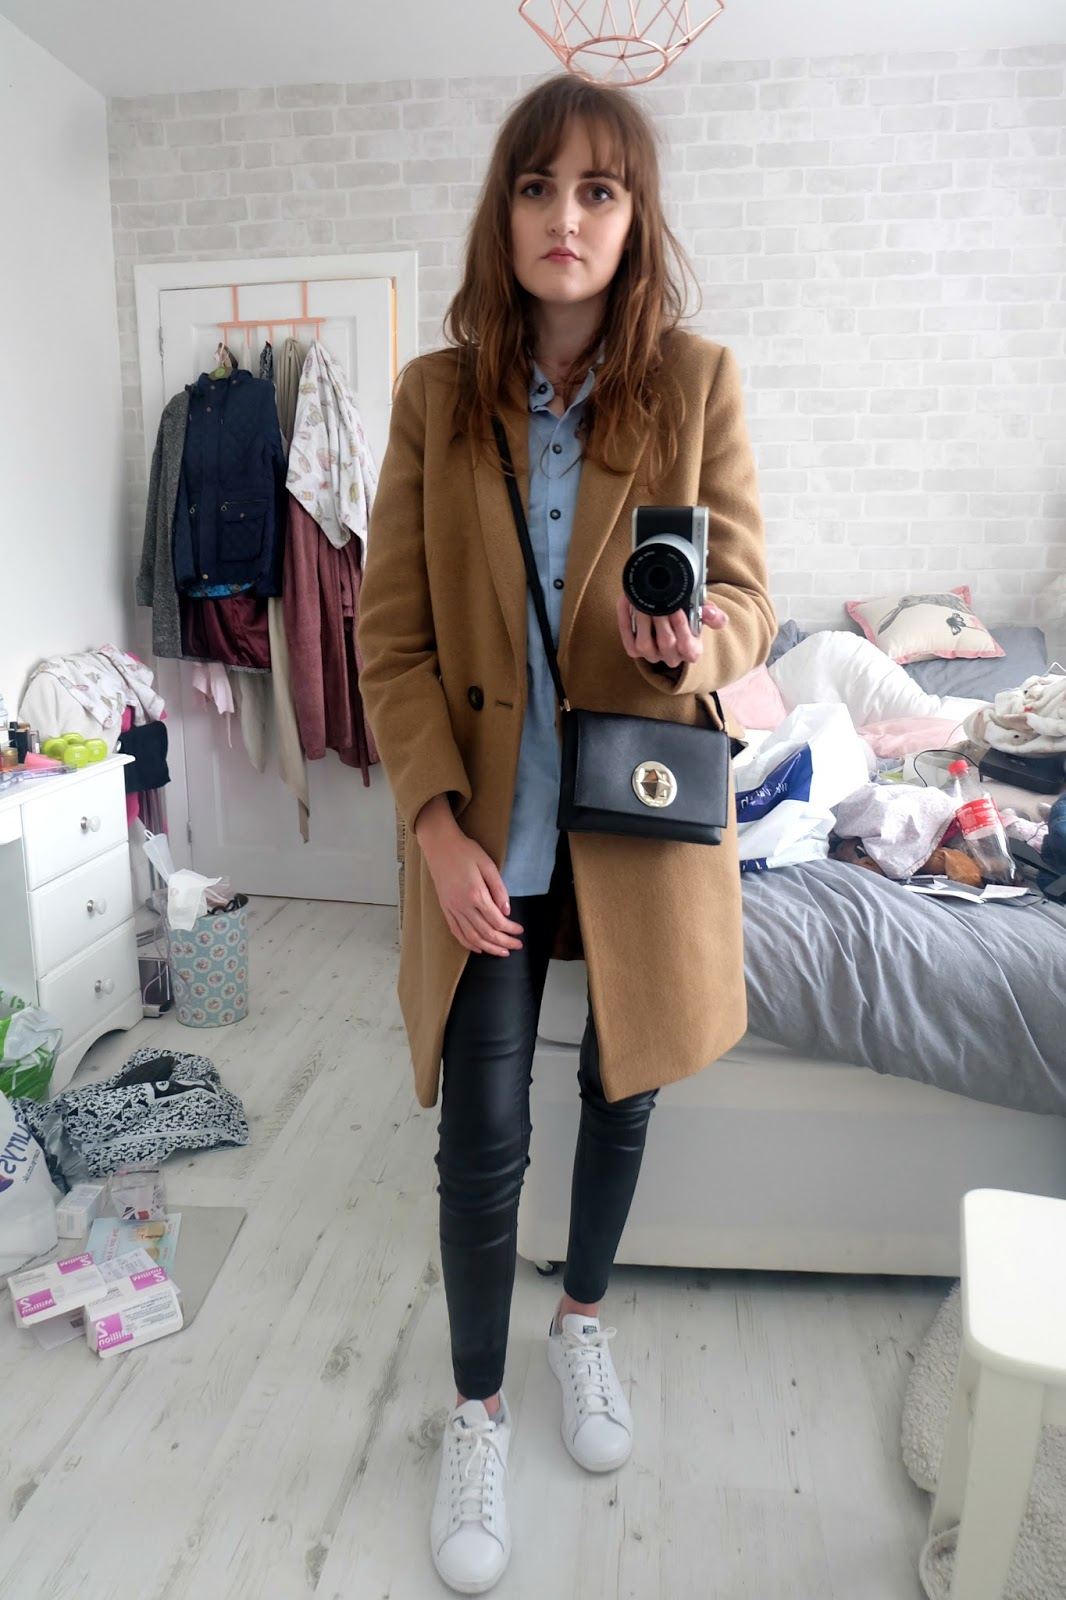 topshop blue shirt, leather look jeans new look, adidas stan smith navy and white, marks and spencer camel coat, kate spade sally bag